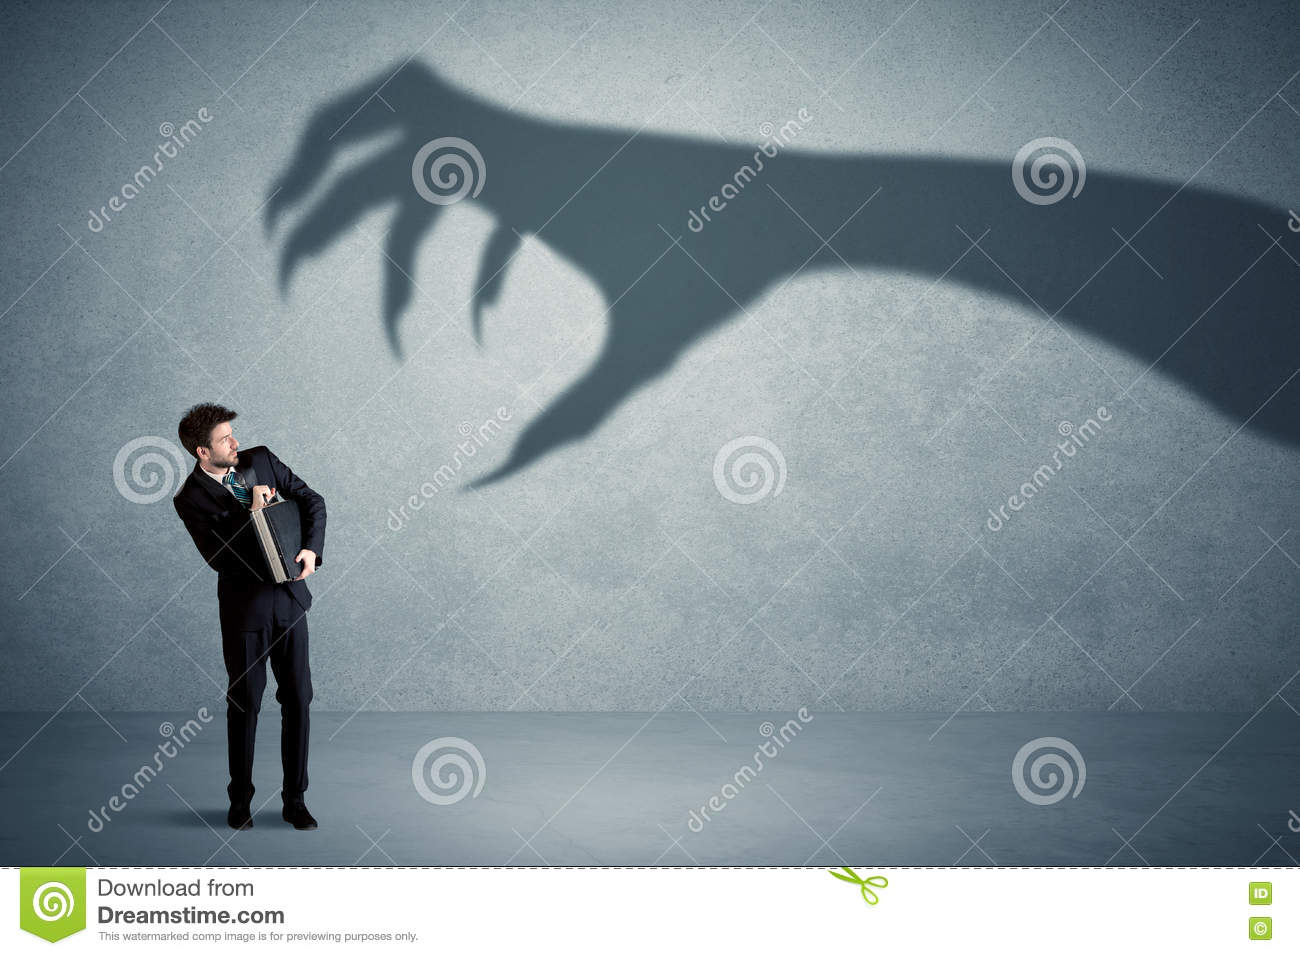 business person afraid of a big monster claw shadow concept stock